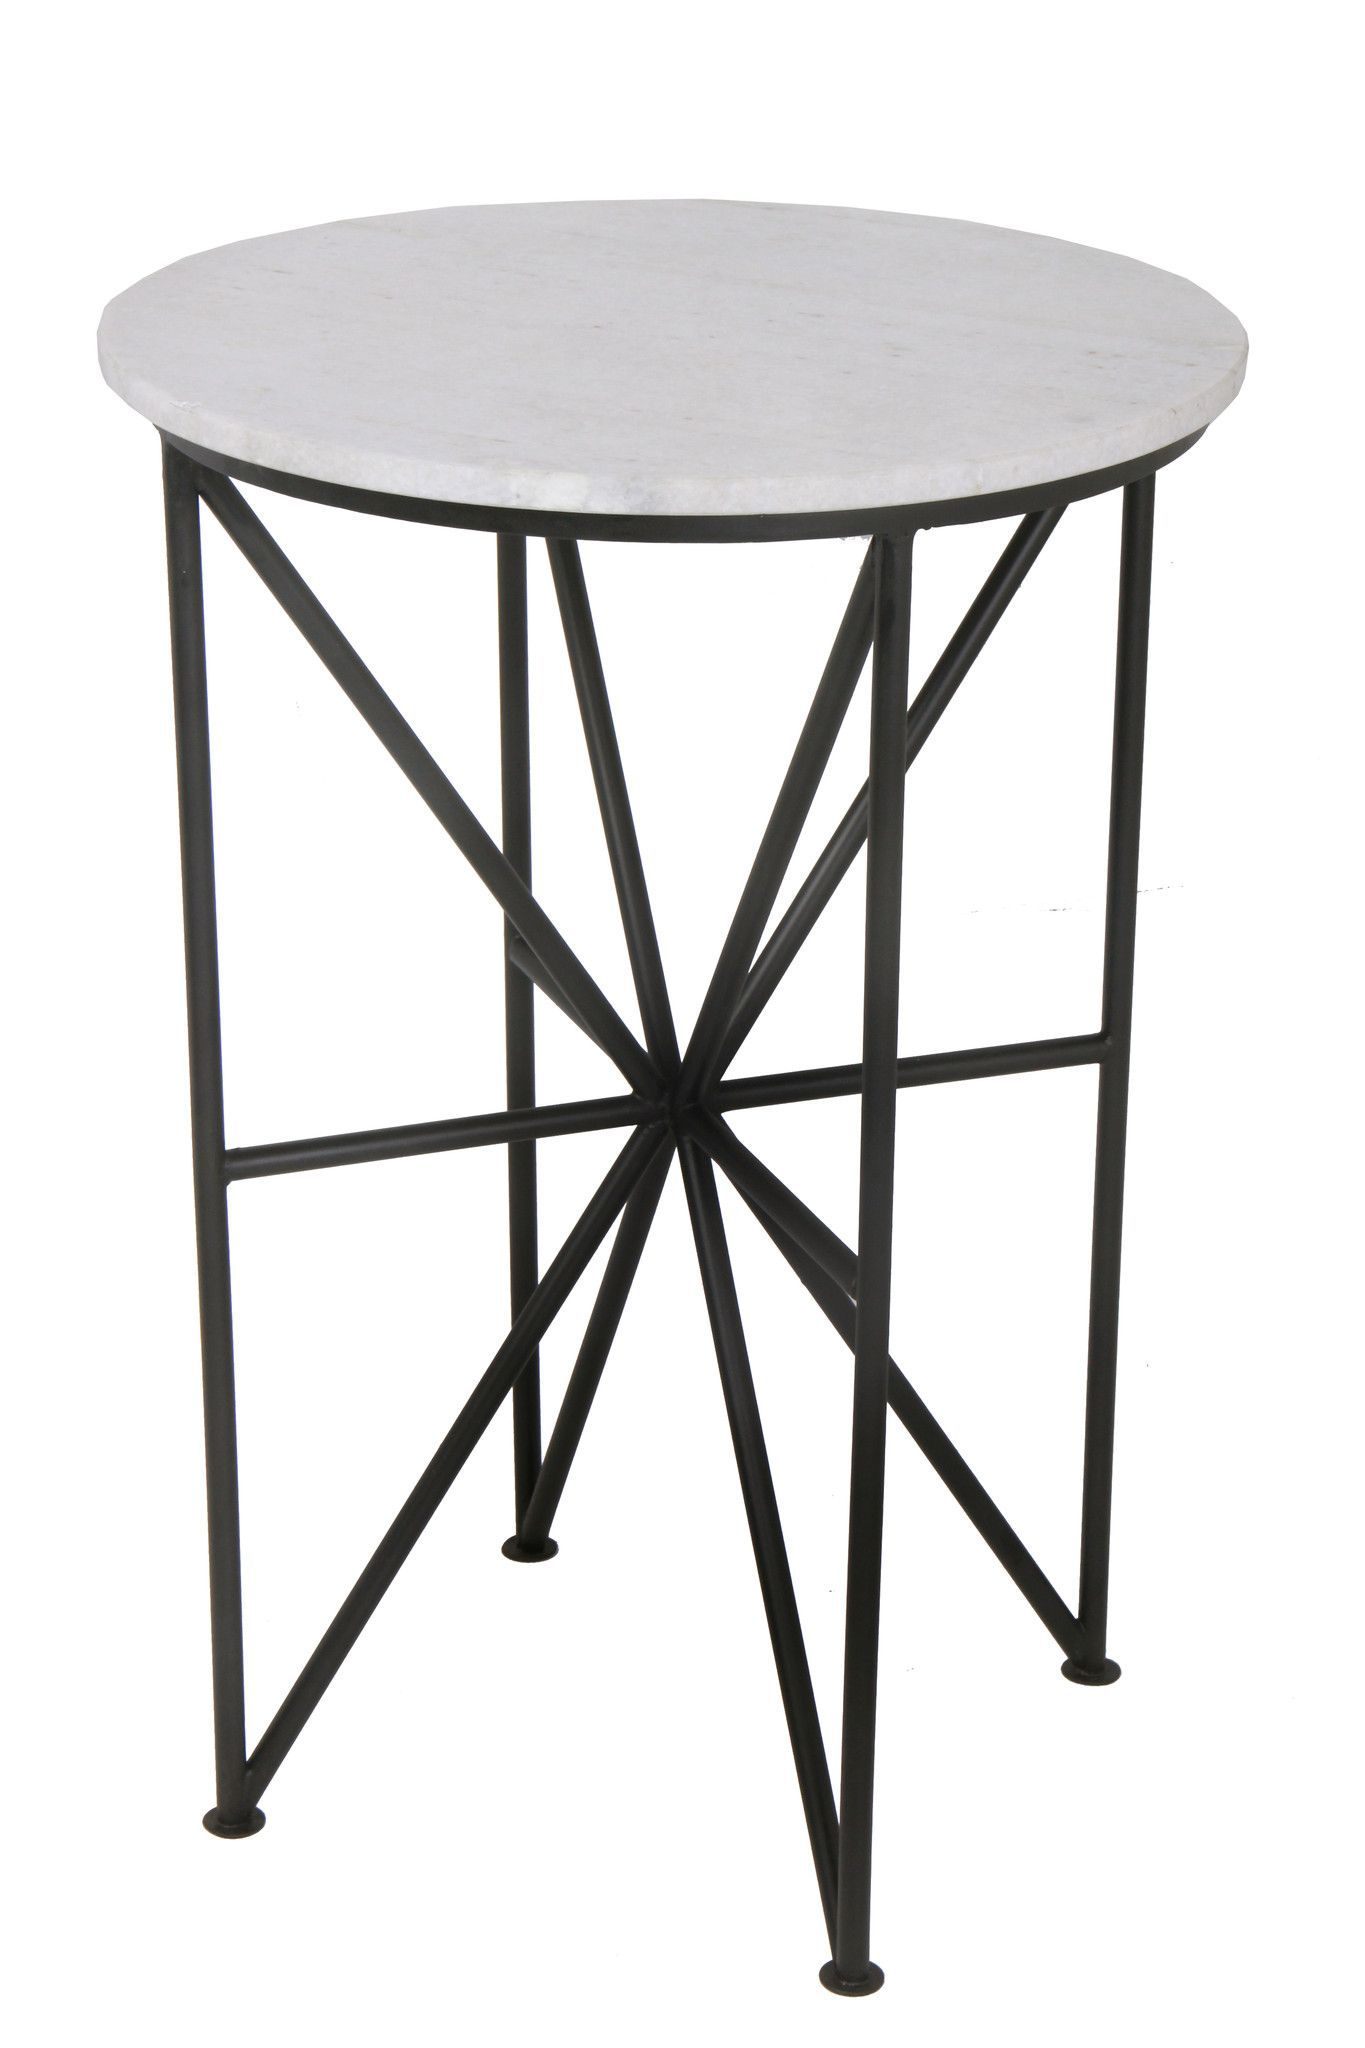 quadrant glass accent table black products modern bedroom furniture for small rooms raton study lamp red home accessories silver grey lamps patio rustic sets round acrylic side